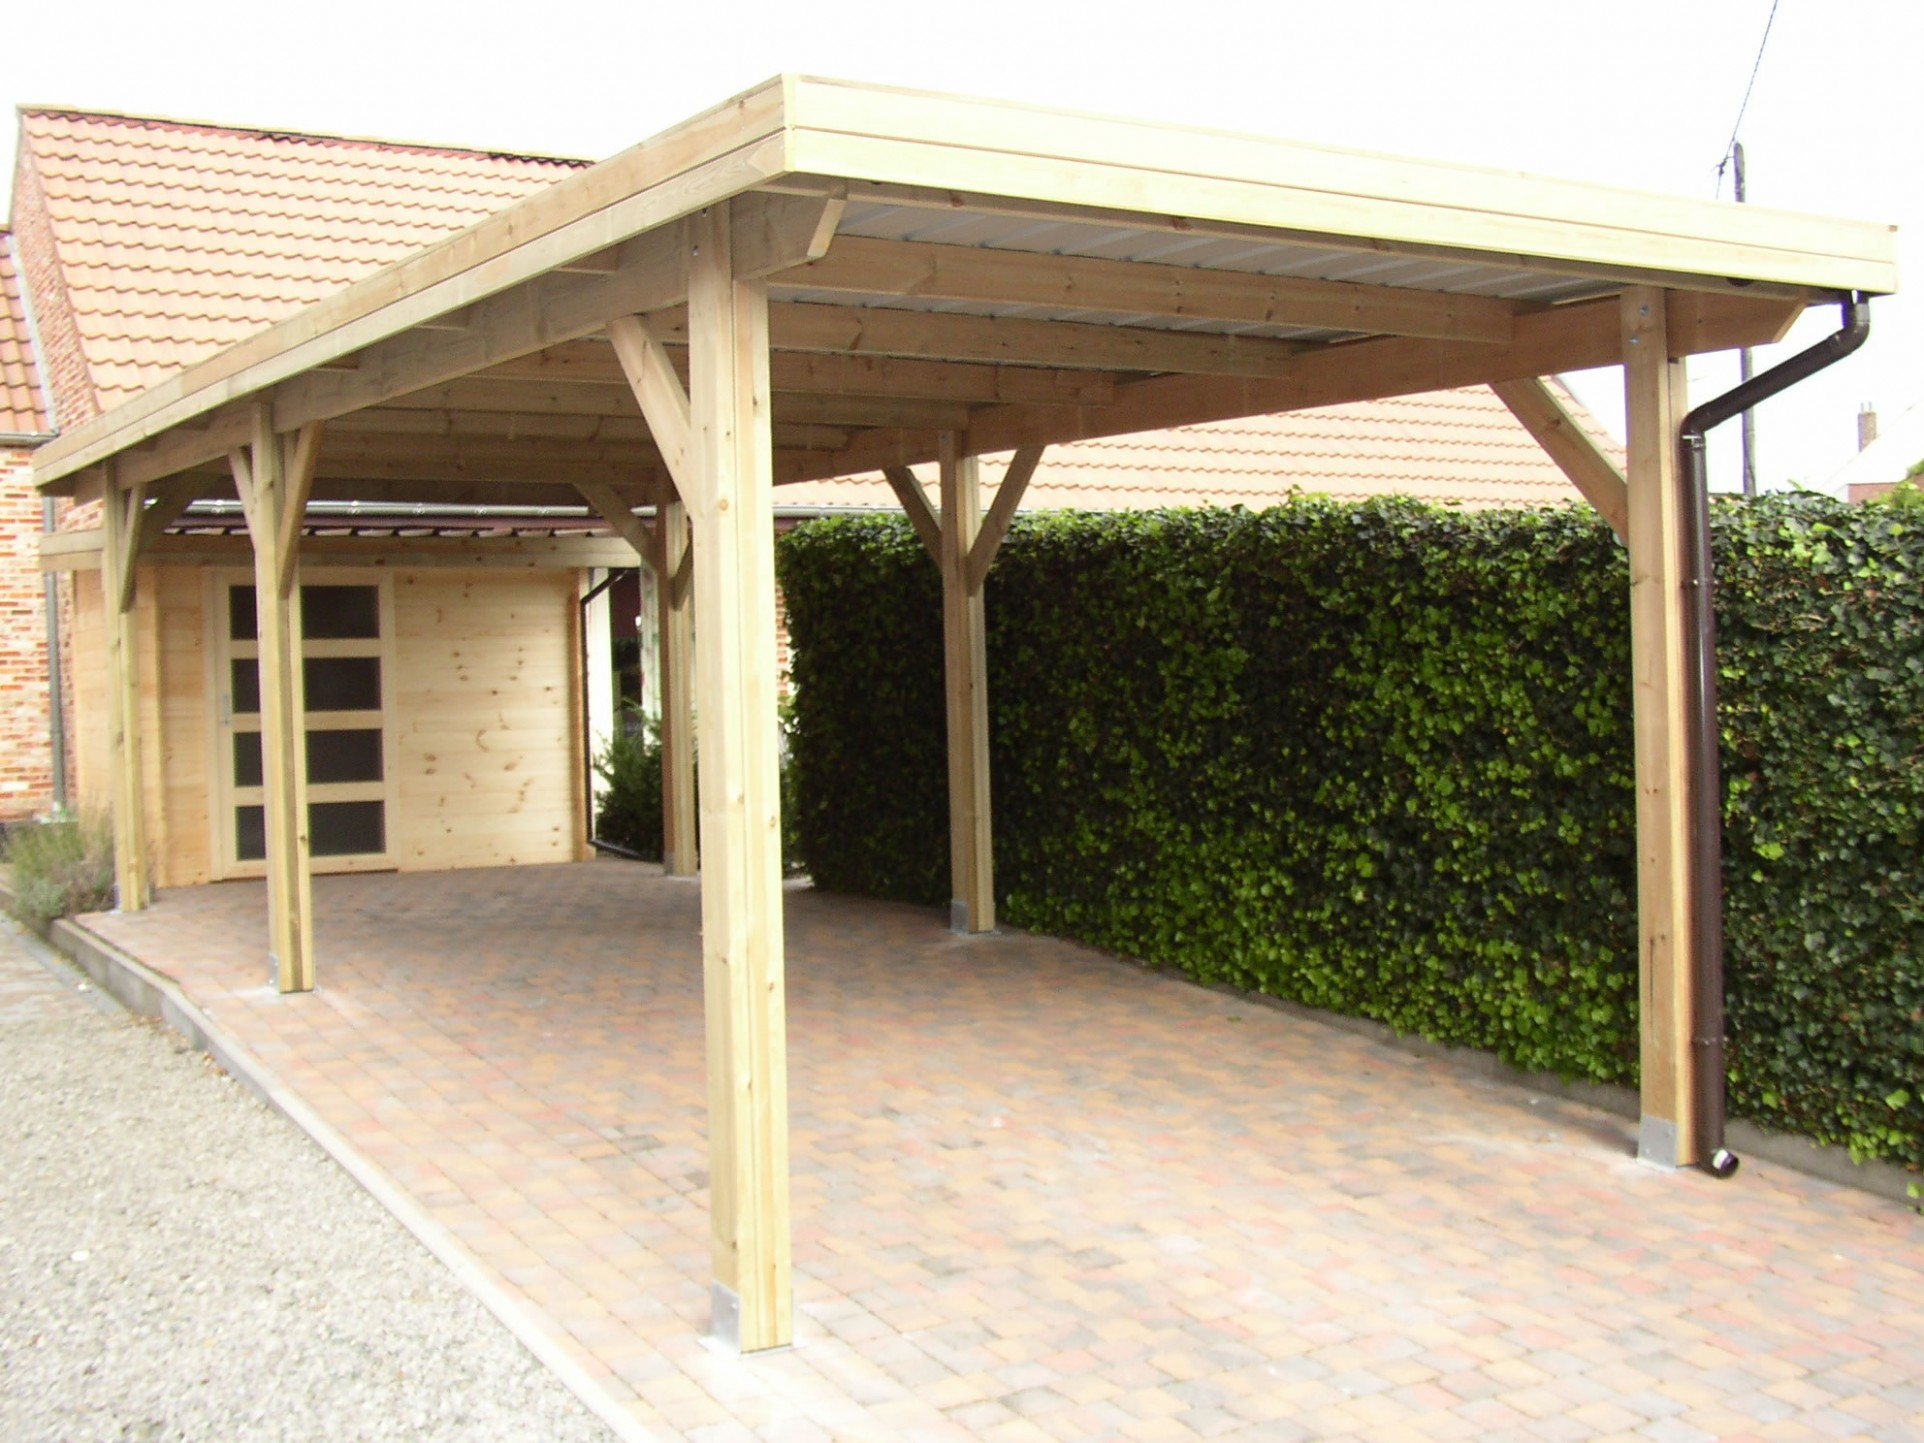 Ten Latest Tips You Can Learn When Attending Outdoor Metal Carports | outdoor metal carports